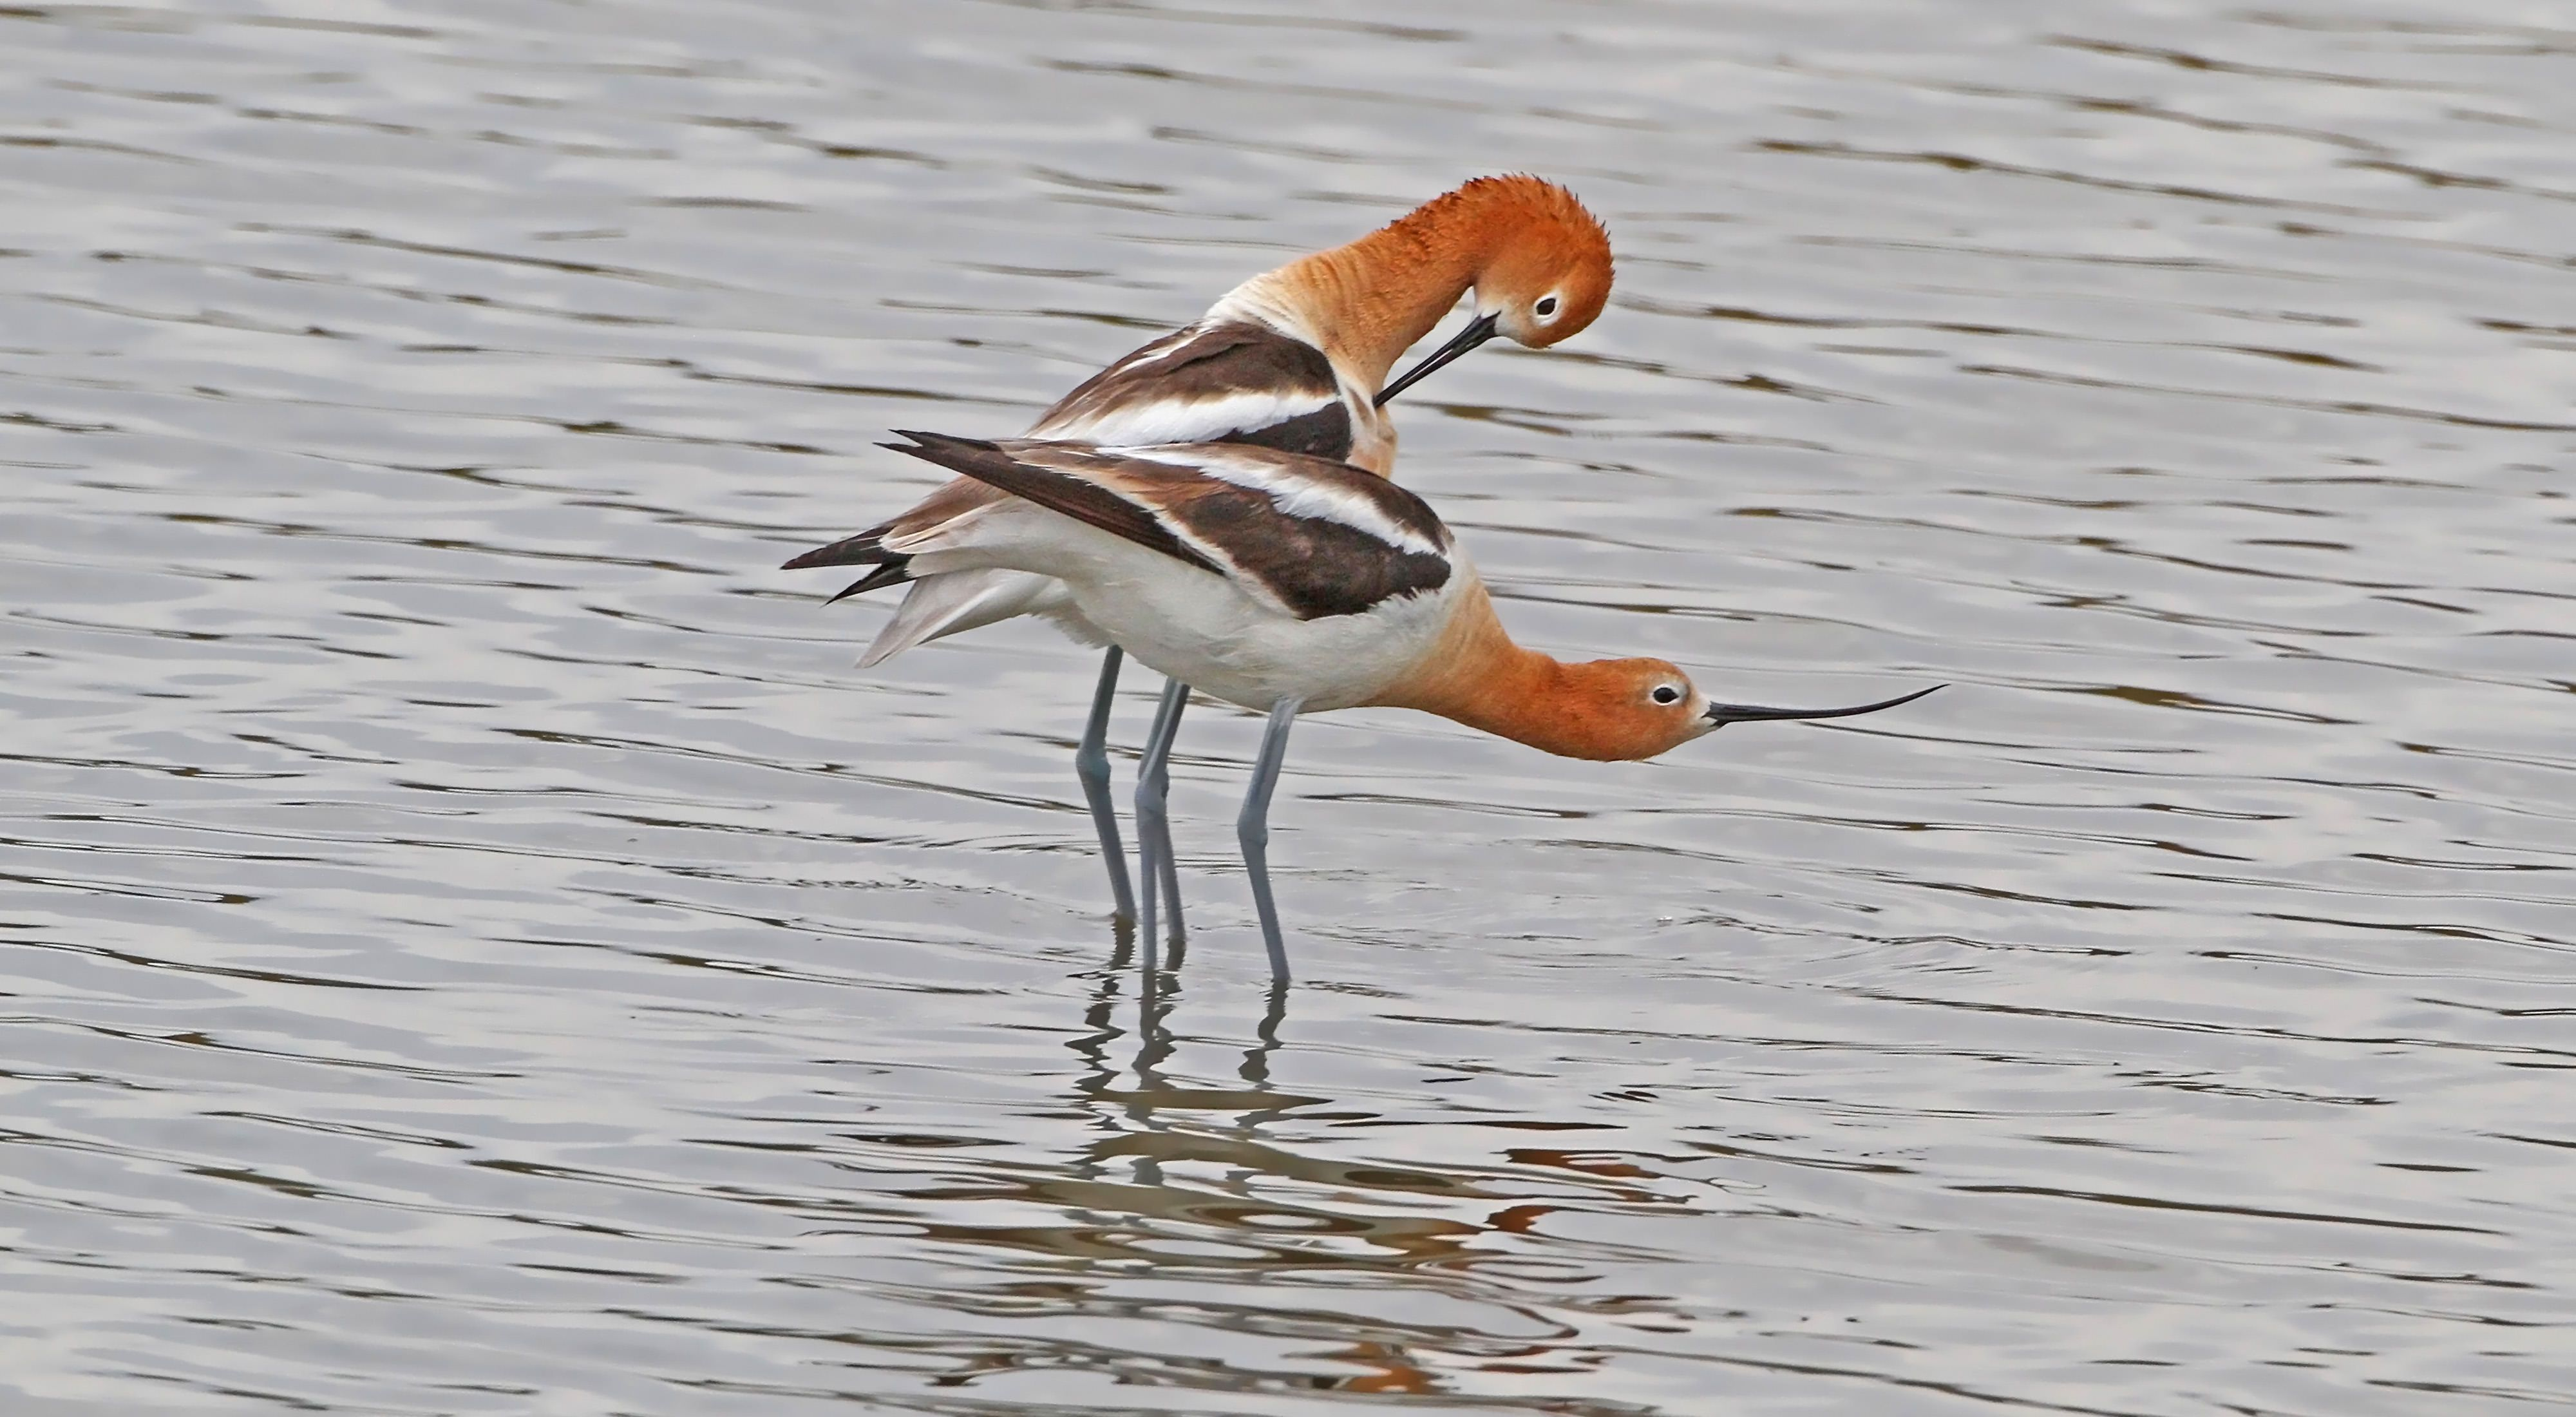 Two red-headed birds entwined while standing in shallow water.